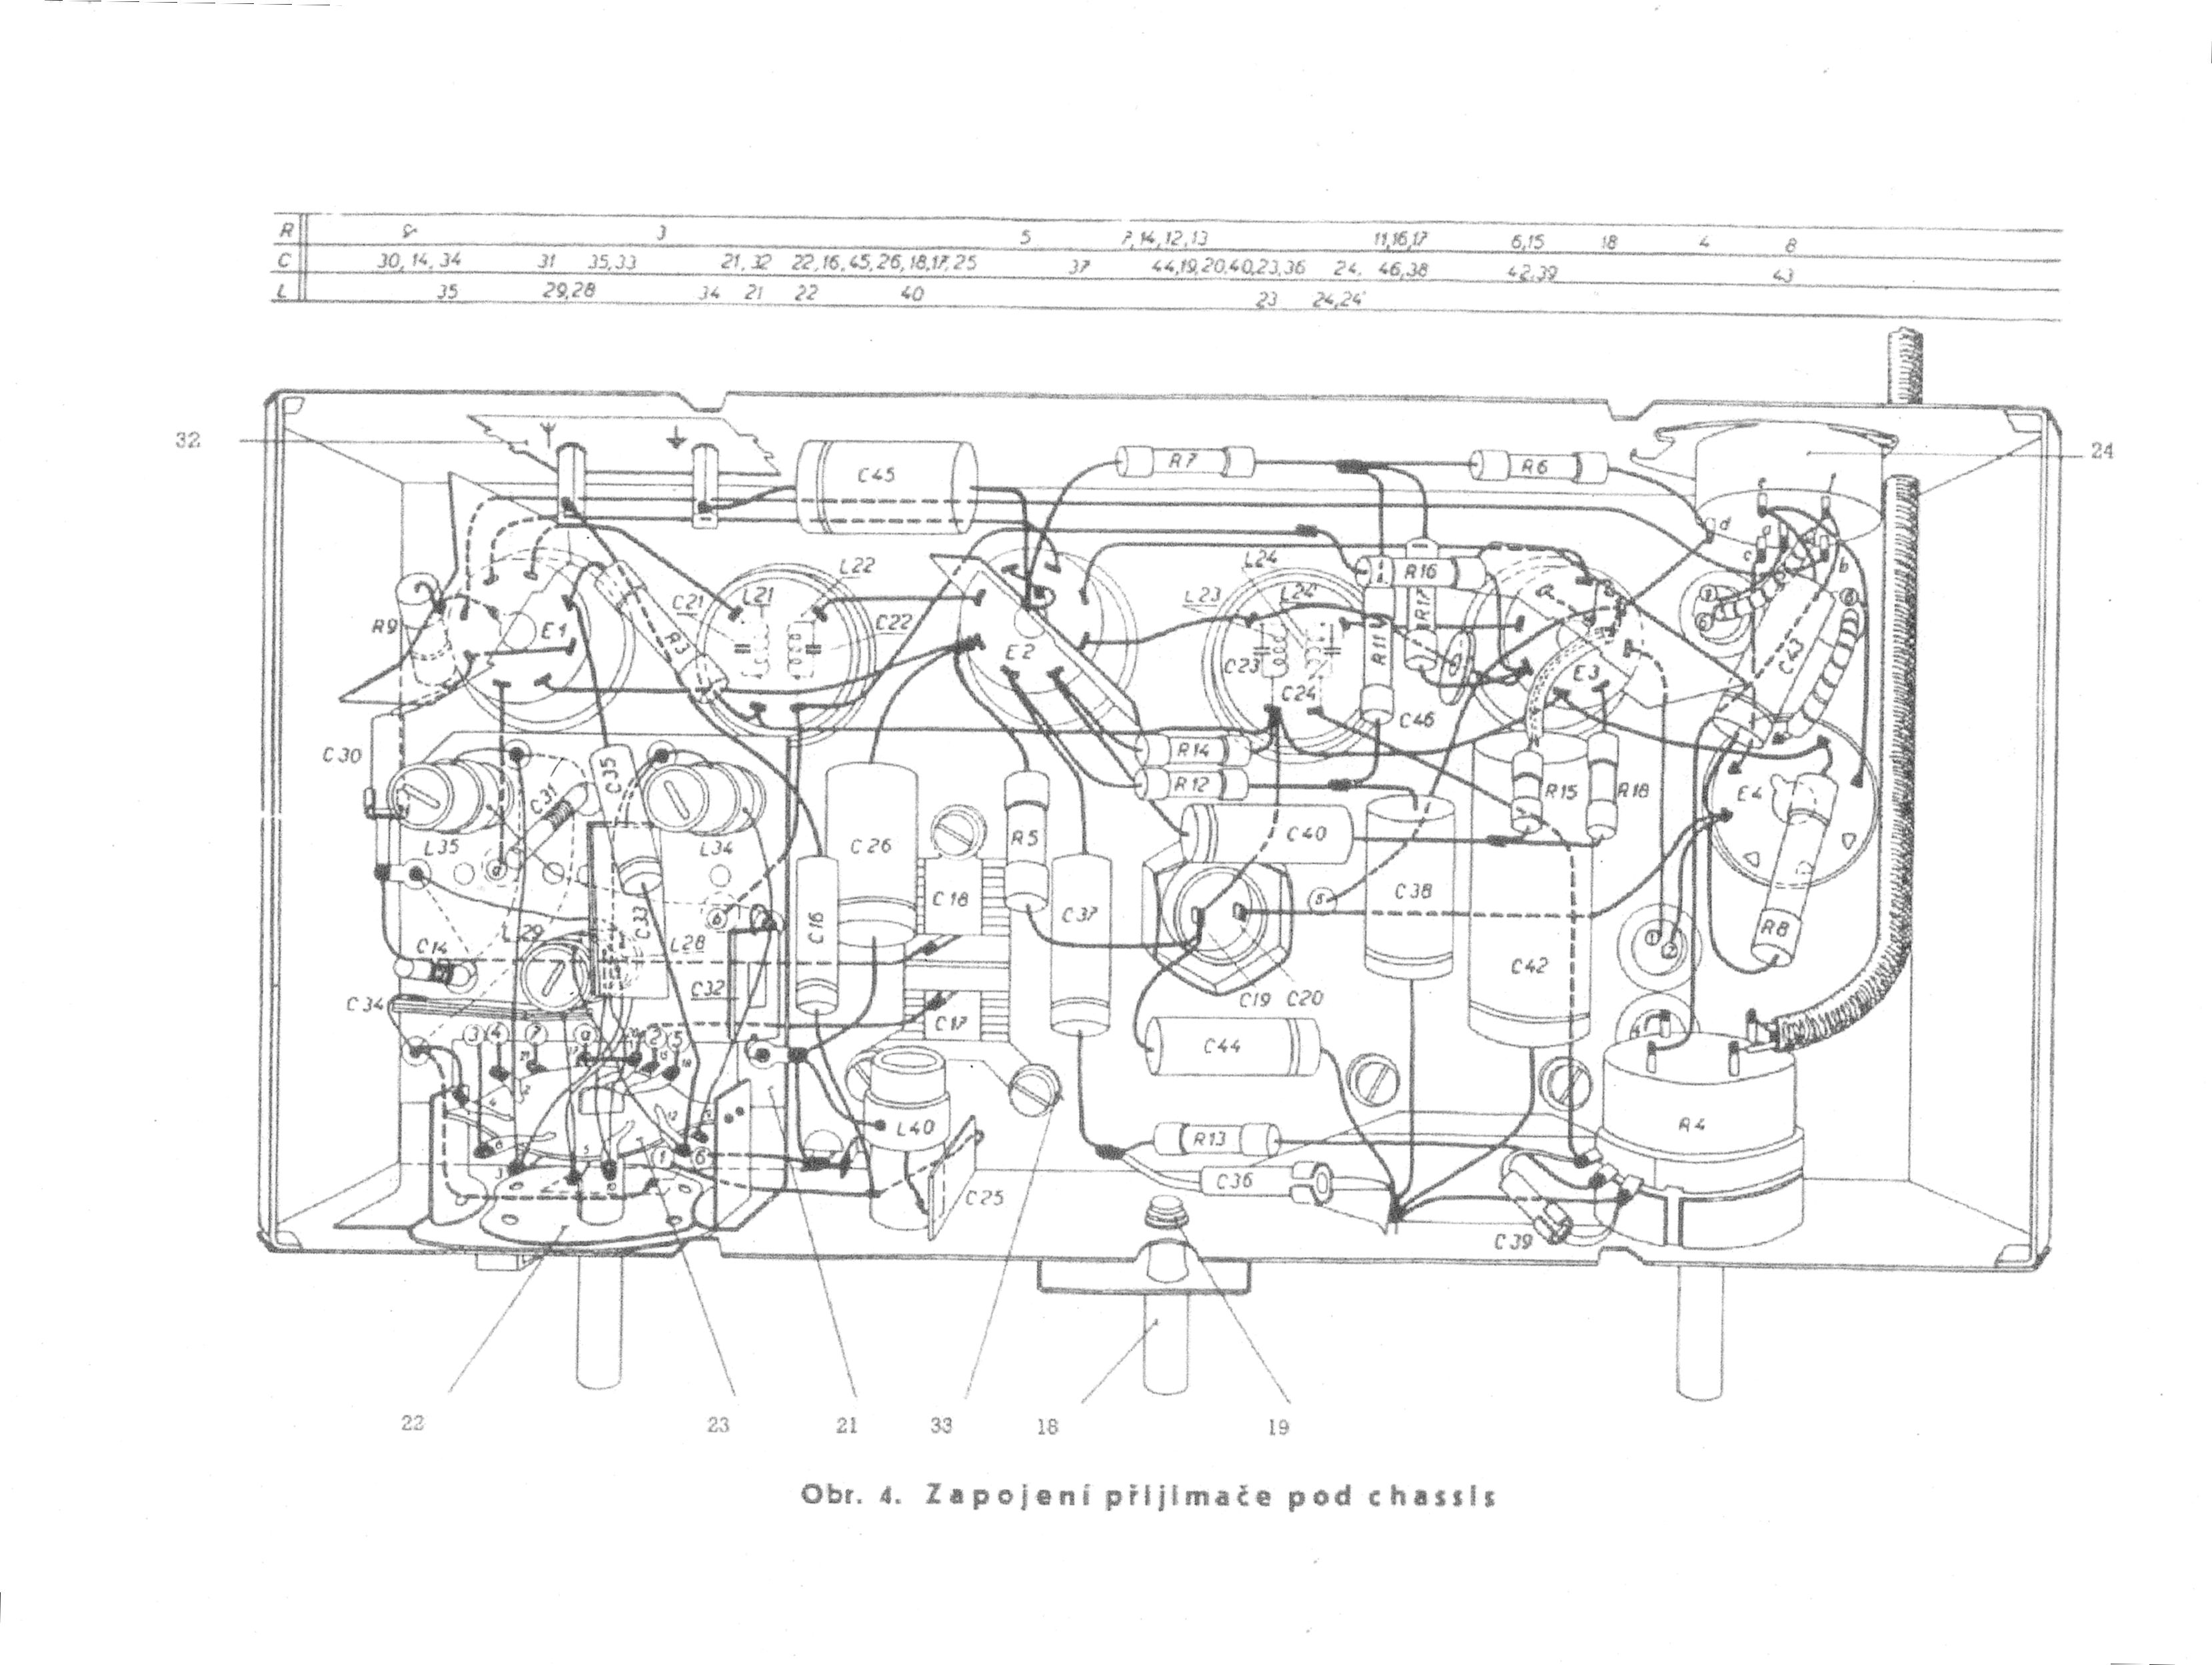 Tesla Model S Wiring Diagram